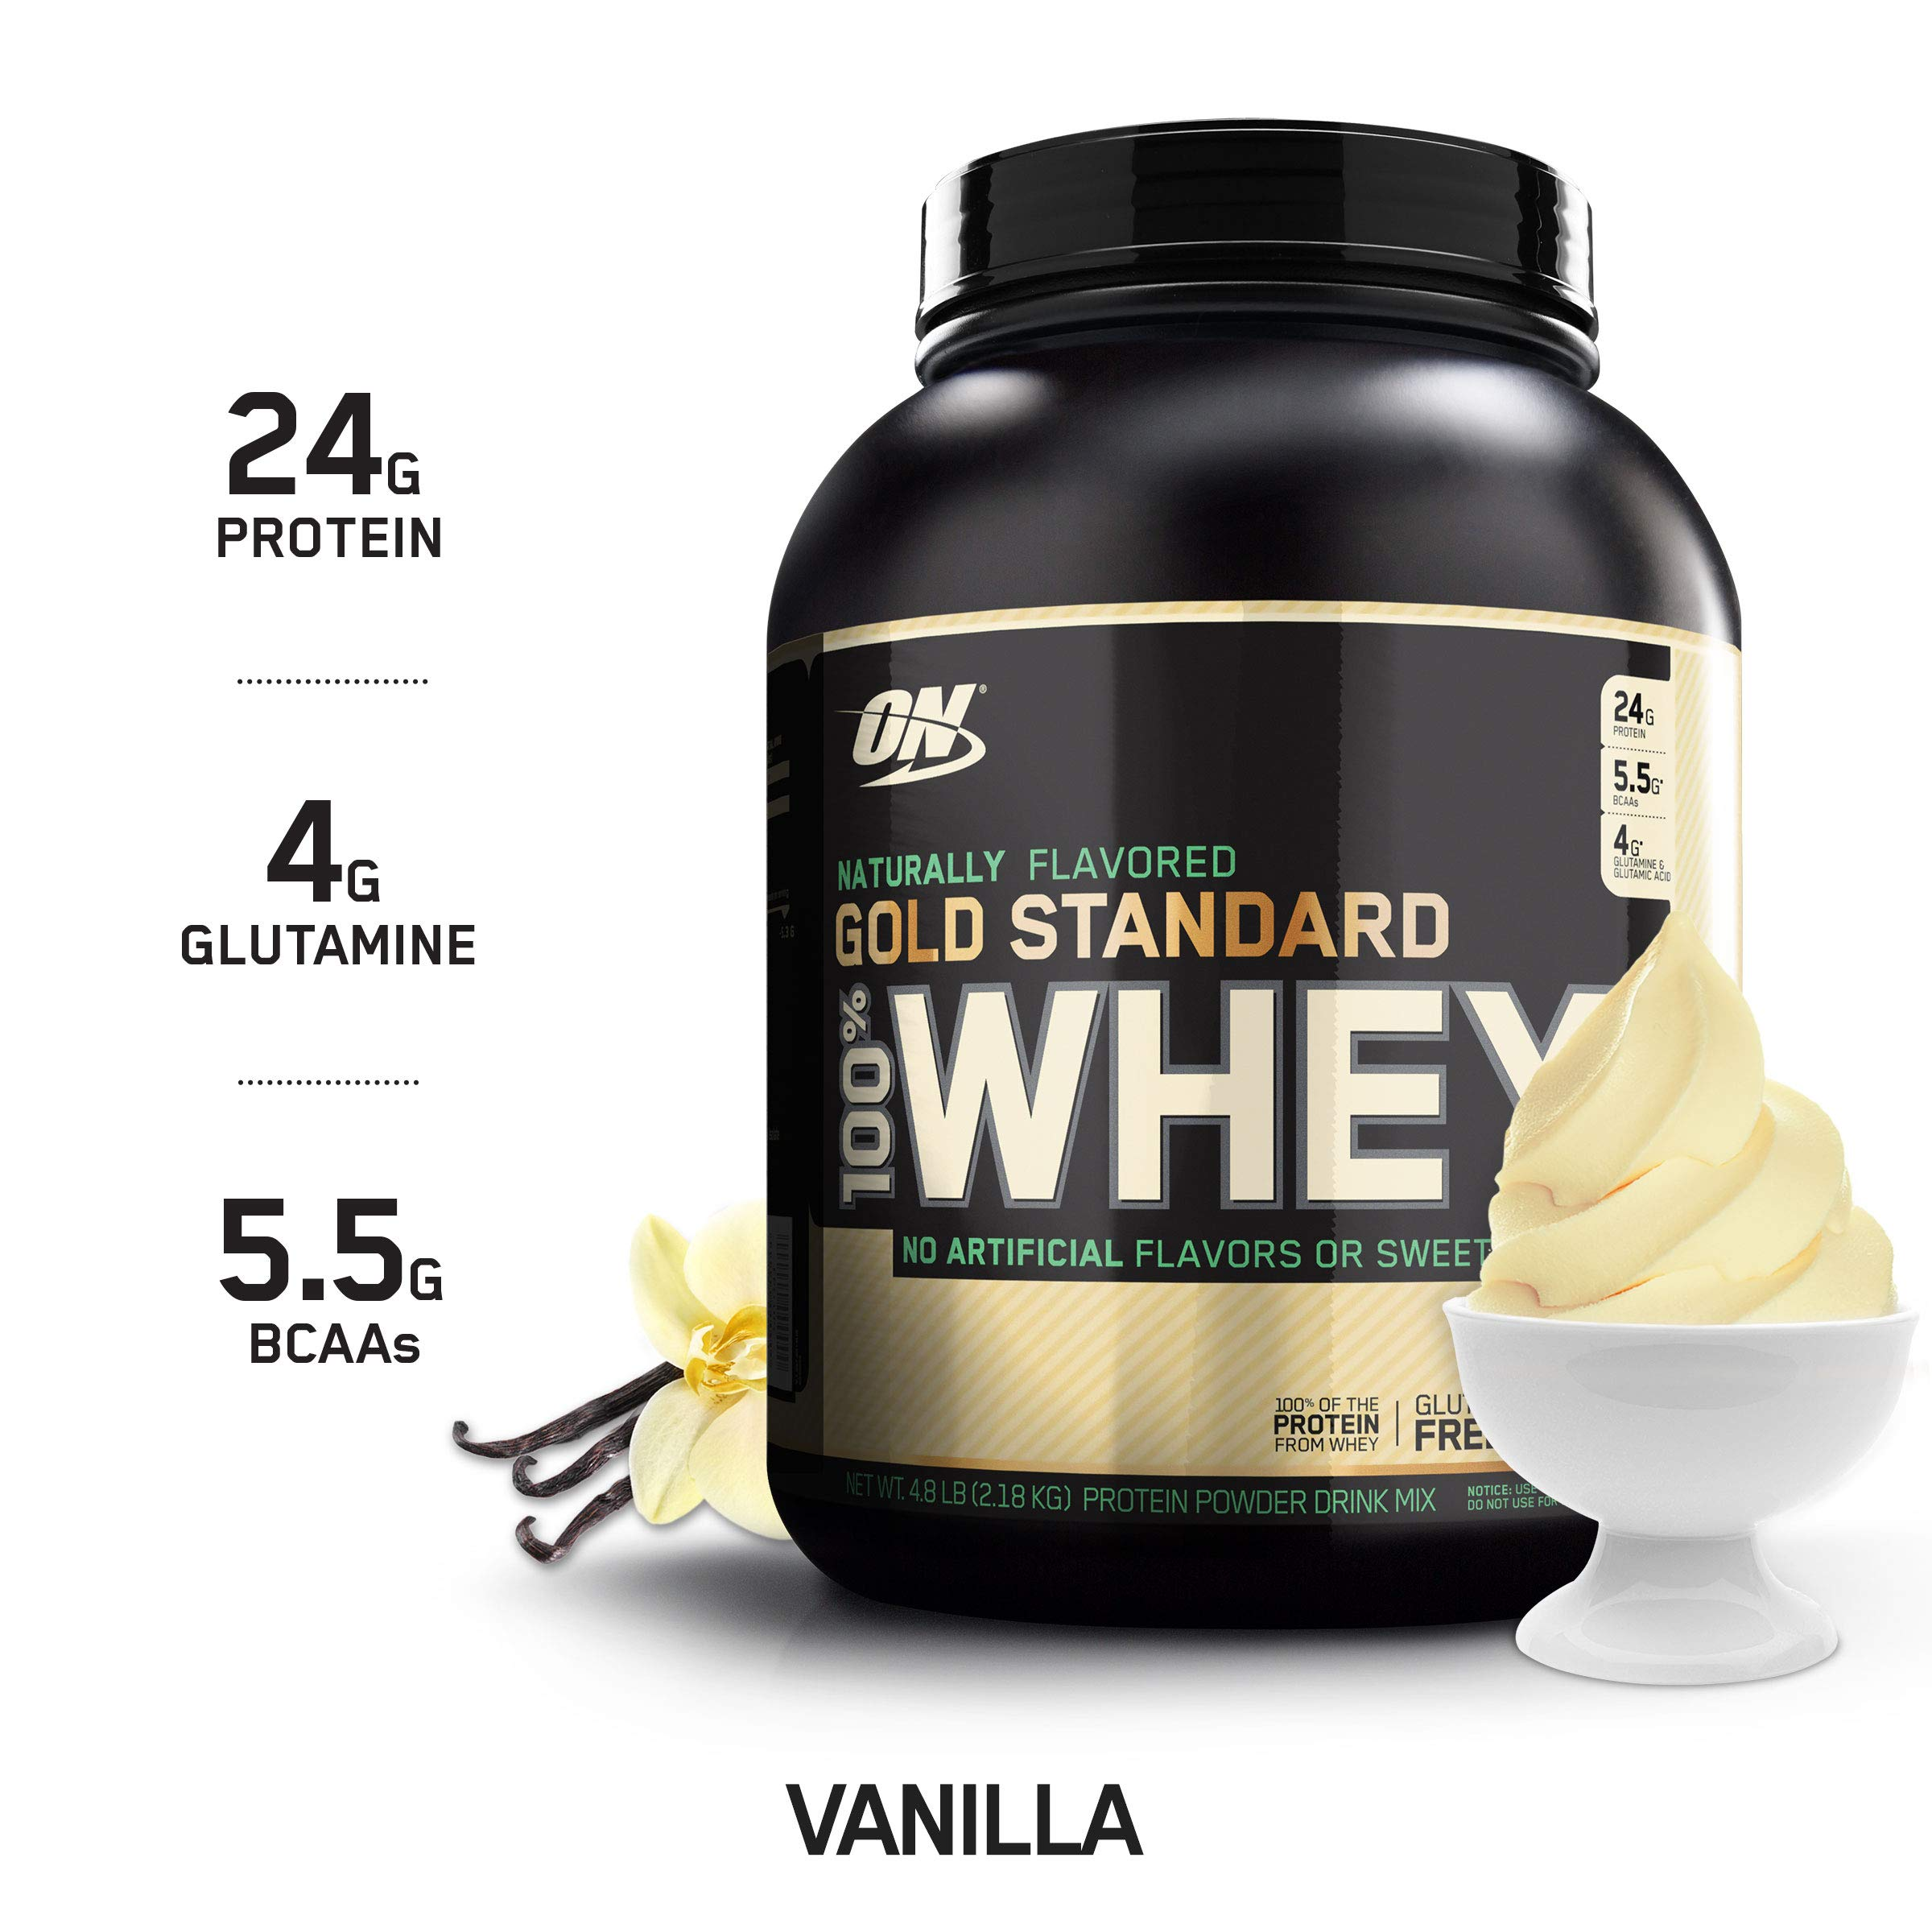 OPTIMUM NUTRITION GOLD STANDARD 100% Whey Protein Powder, Naturally Flavored Vanilla, 4.8 Pound by Optimum Nutrition